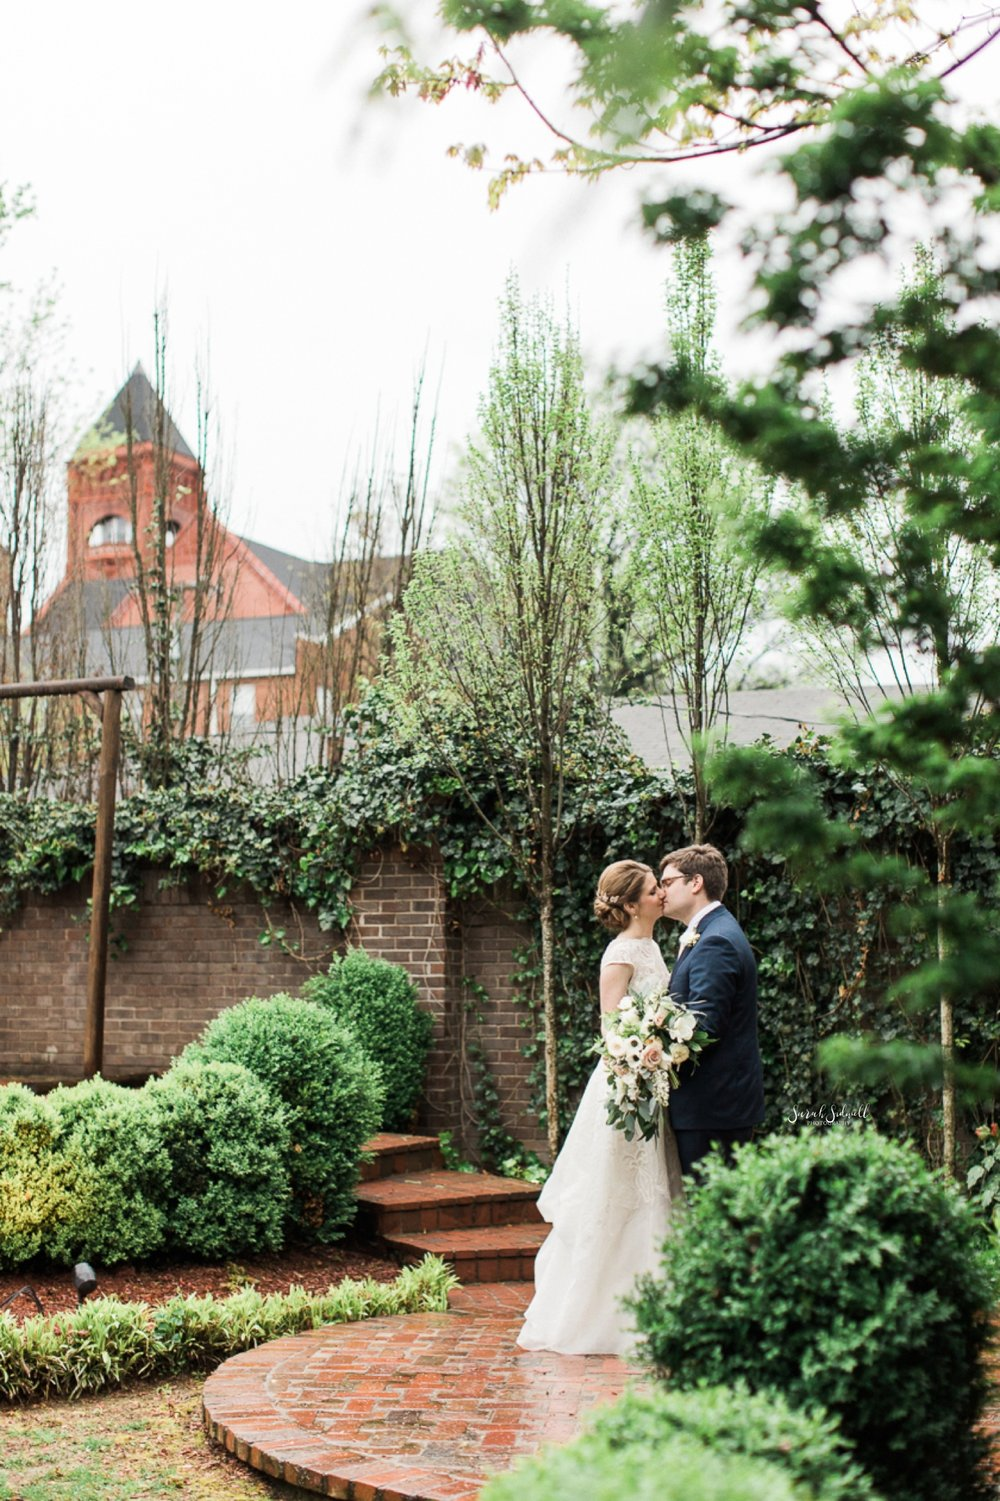 A bride and groom steal a kiss in a secret garden.